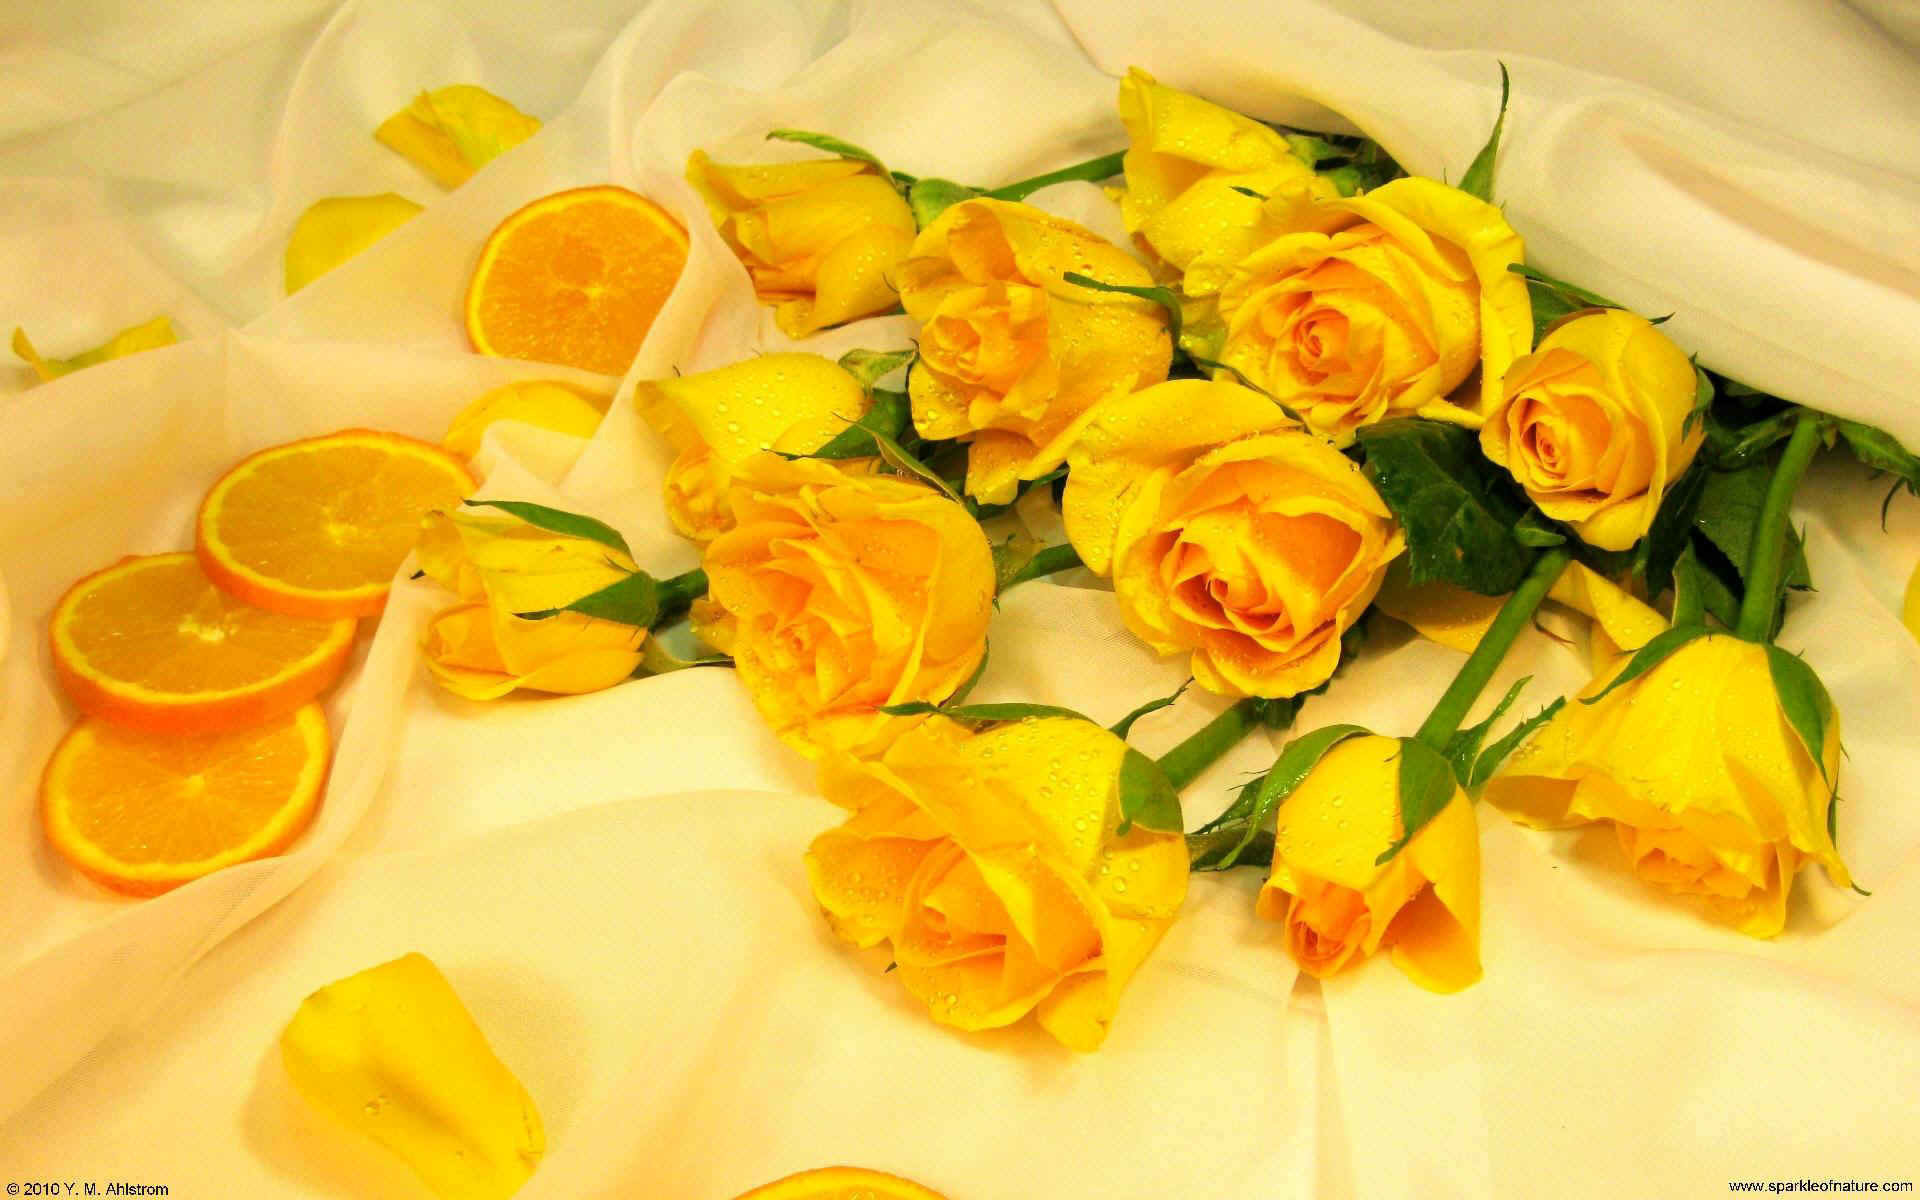 Yellow Roses Hd Wallpaper Yellow Aesthetic Desktop Background 1051592 Hd Wallpaper Backgrounds Download